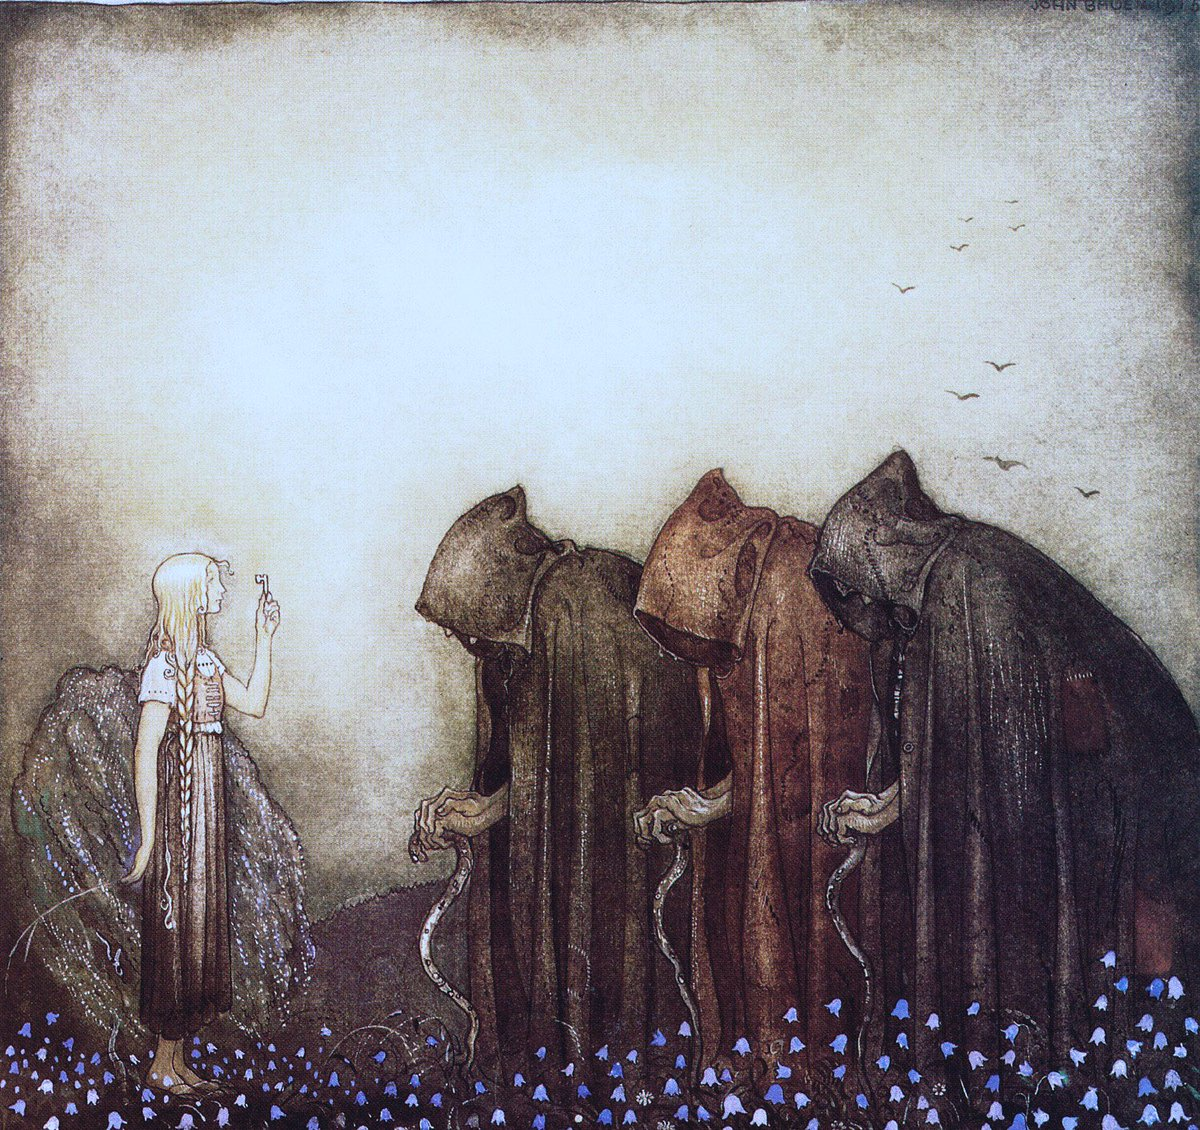 Thread: John Bauer (1882-1918) was a Swedish artist who painted landscapes & mythology. He is famed for his images of gnomes & trolls. He was a short-lived artist but his work lives on in the imagination. And She Held Up a Key (1915), Princess (c1913) & Troll (1914)